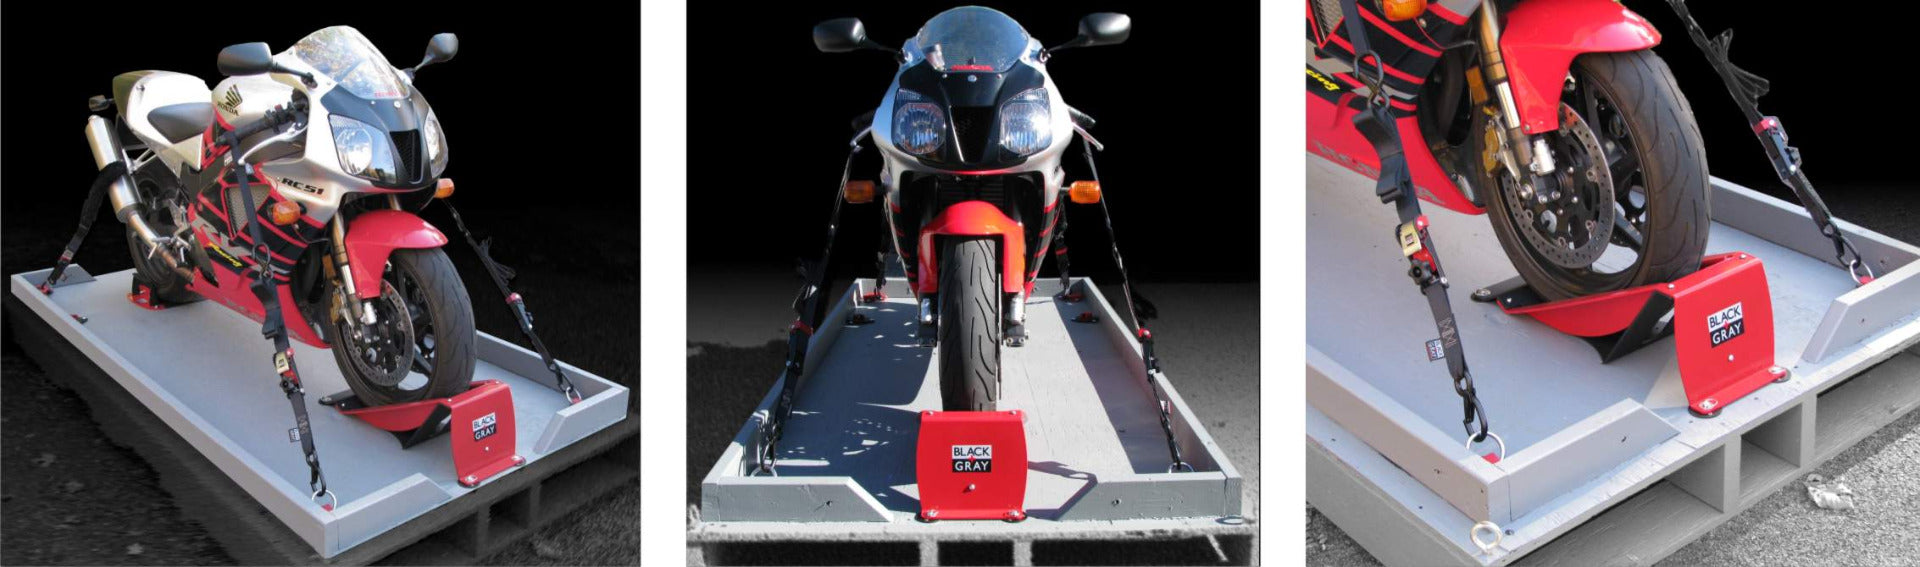 Motorcycle Wheel Chocks and Tie-Down Straps for safe transport